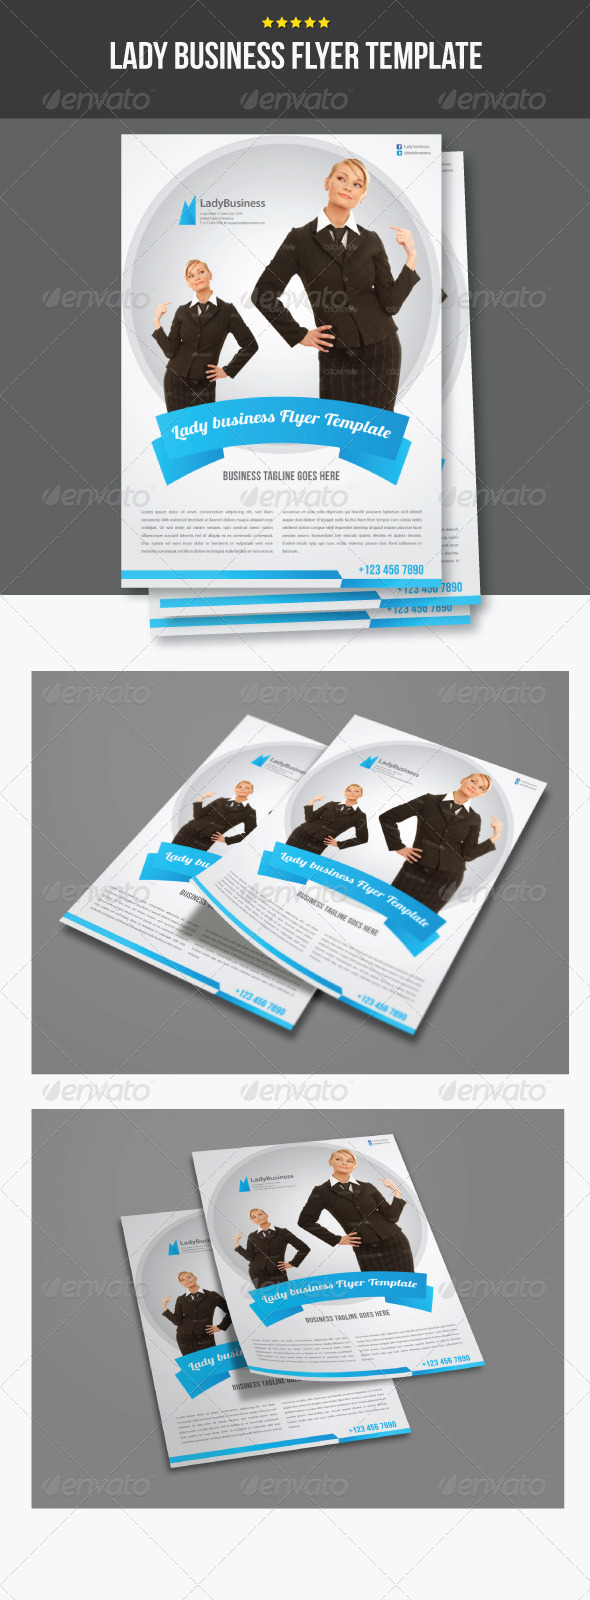 Lady Business Flyer Template - Corporate Flyers